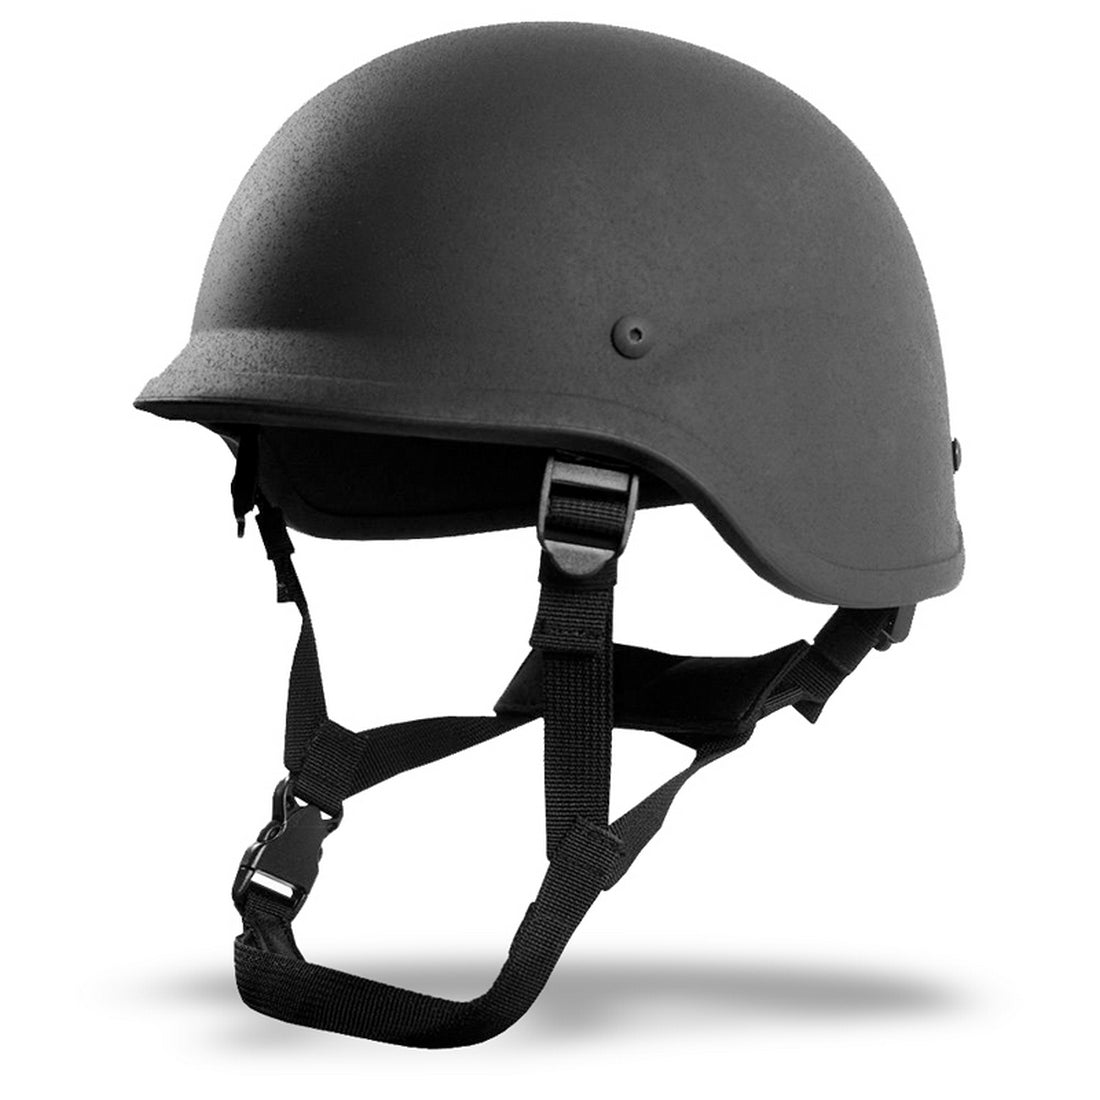 SecPro PASGT Helmet Level IIIA